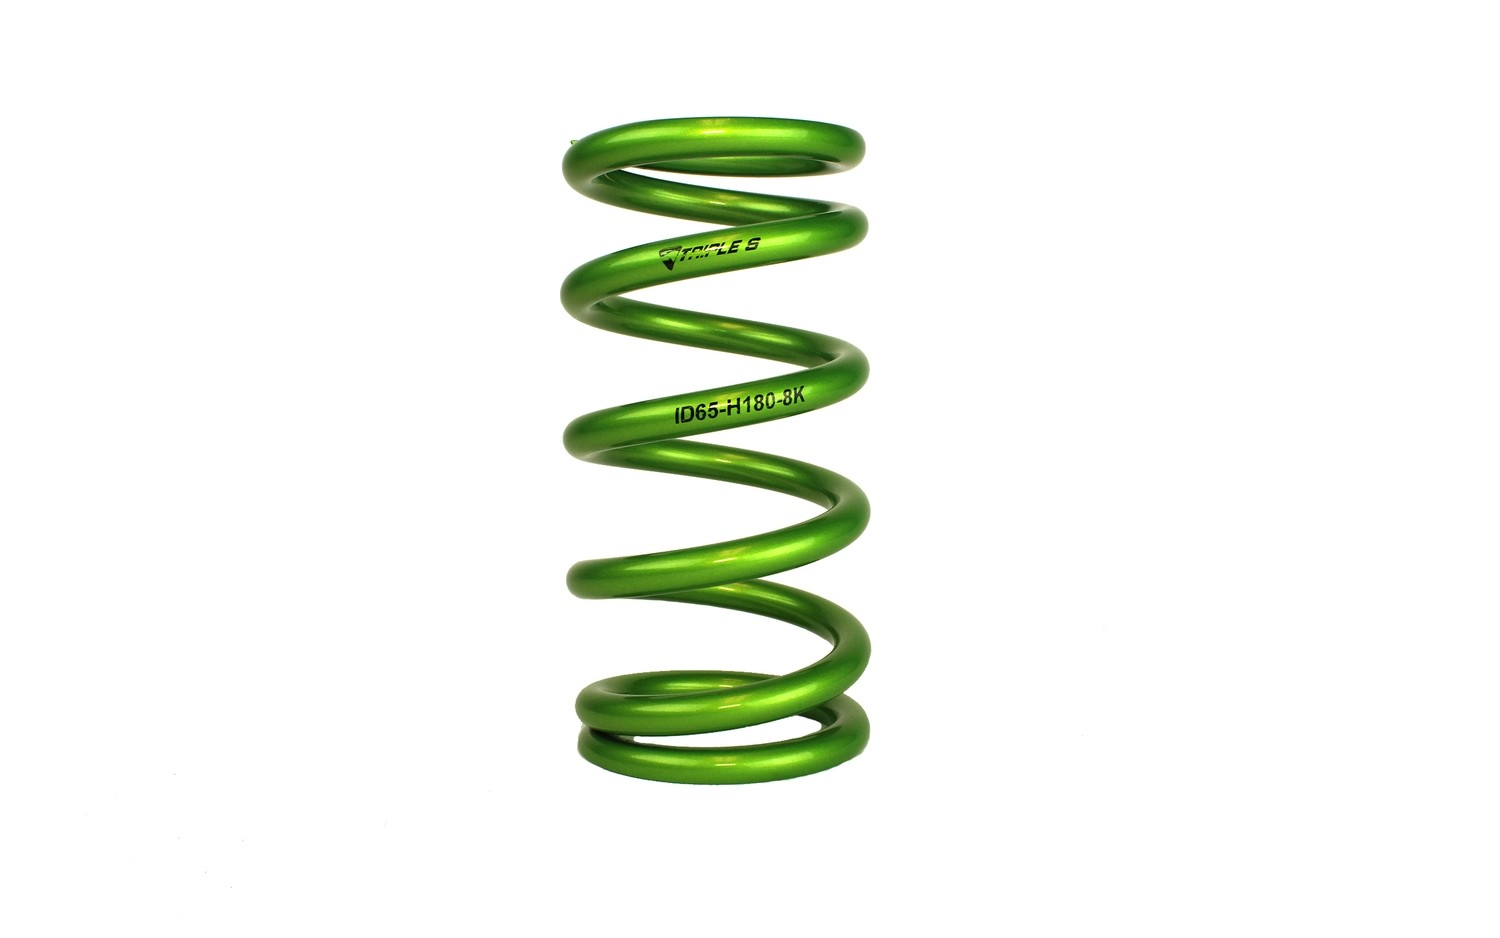 Triple S Spring ID65 200MM 10K